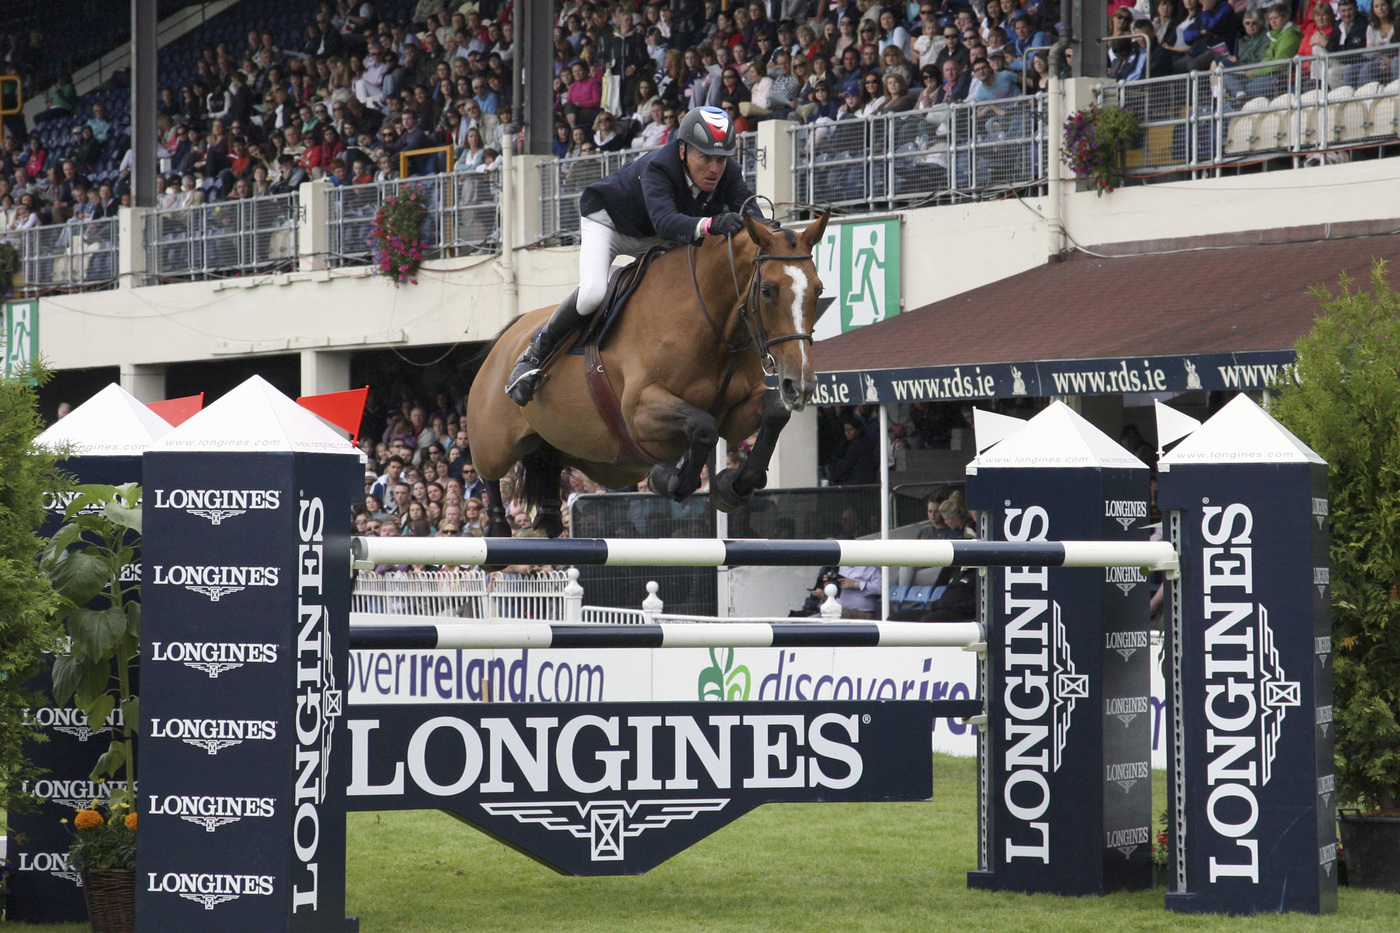 Longines Show Jumping Event: The Dublin Horse Show, where Longines was the official partner and timekeeper, lived up to the expectations last weekend 3